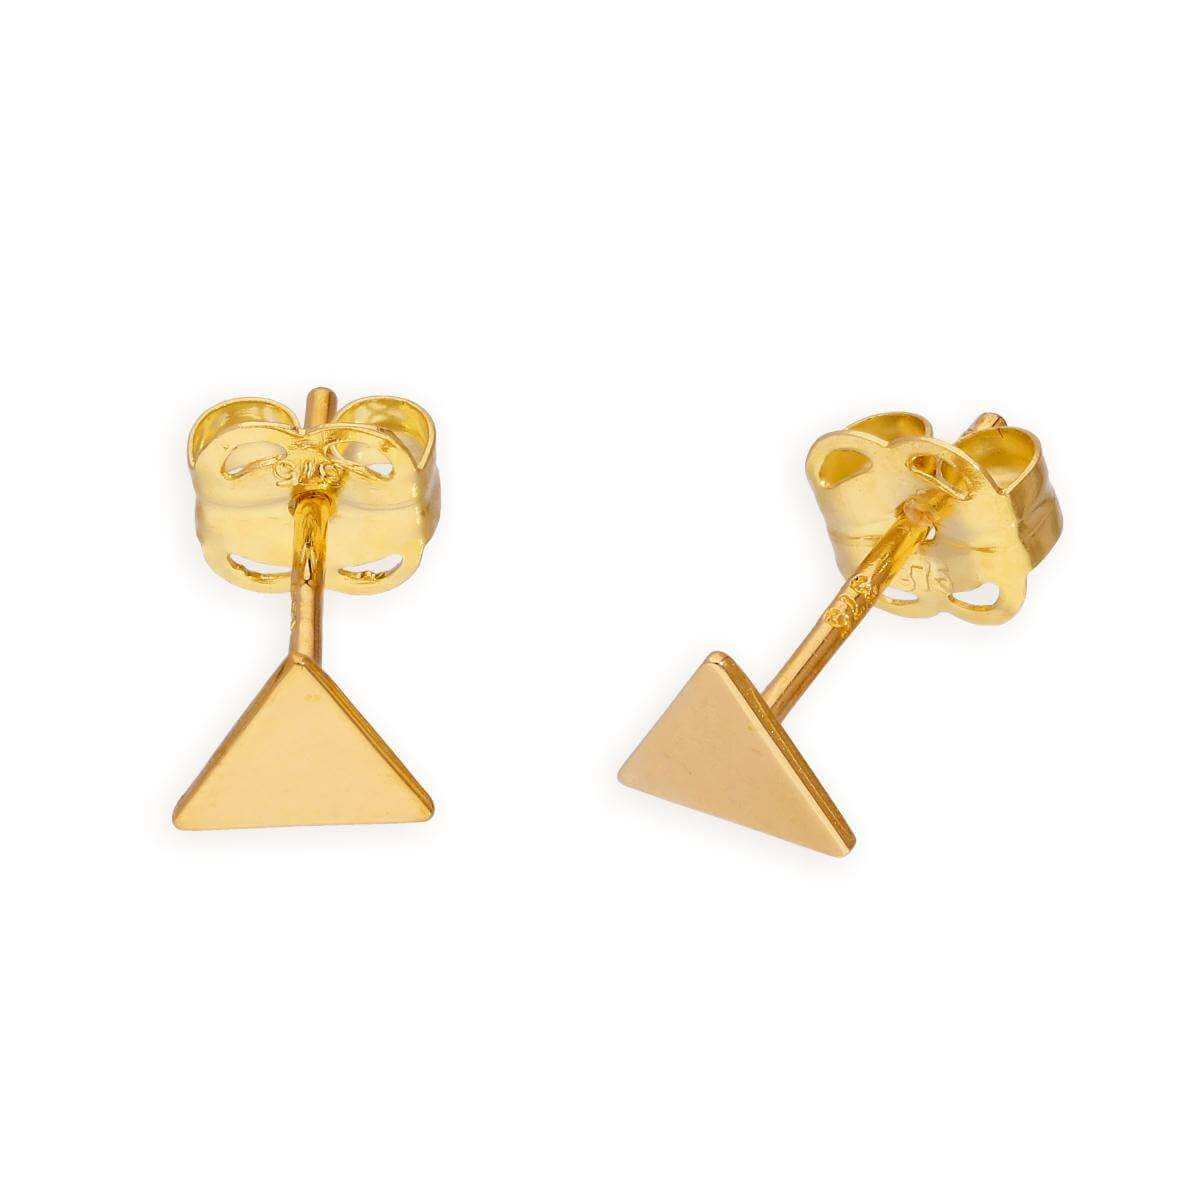 9ct Gold Triangle Stud Earrings